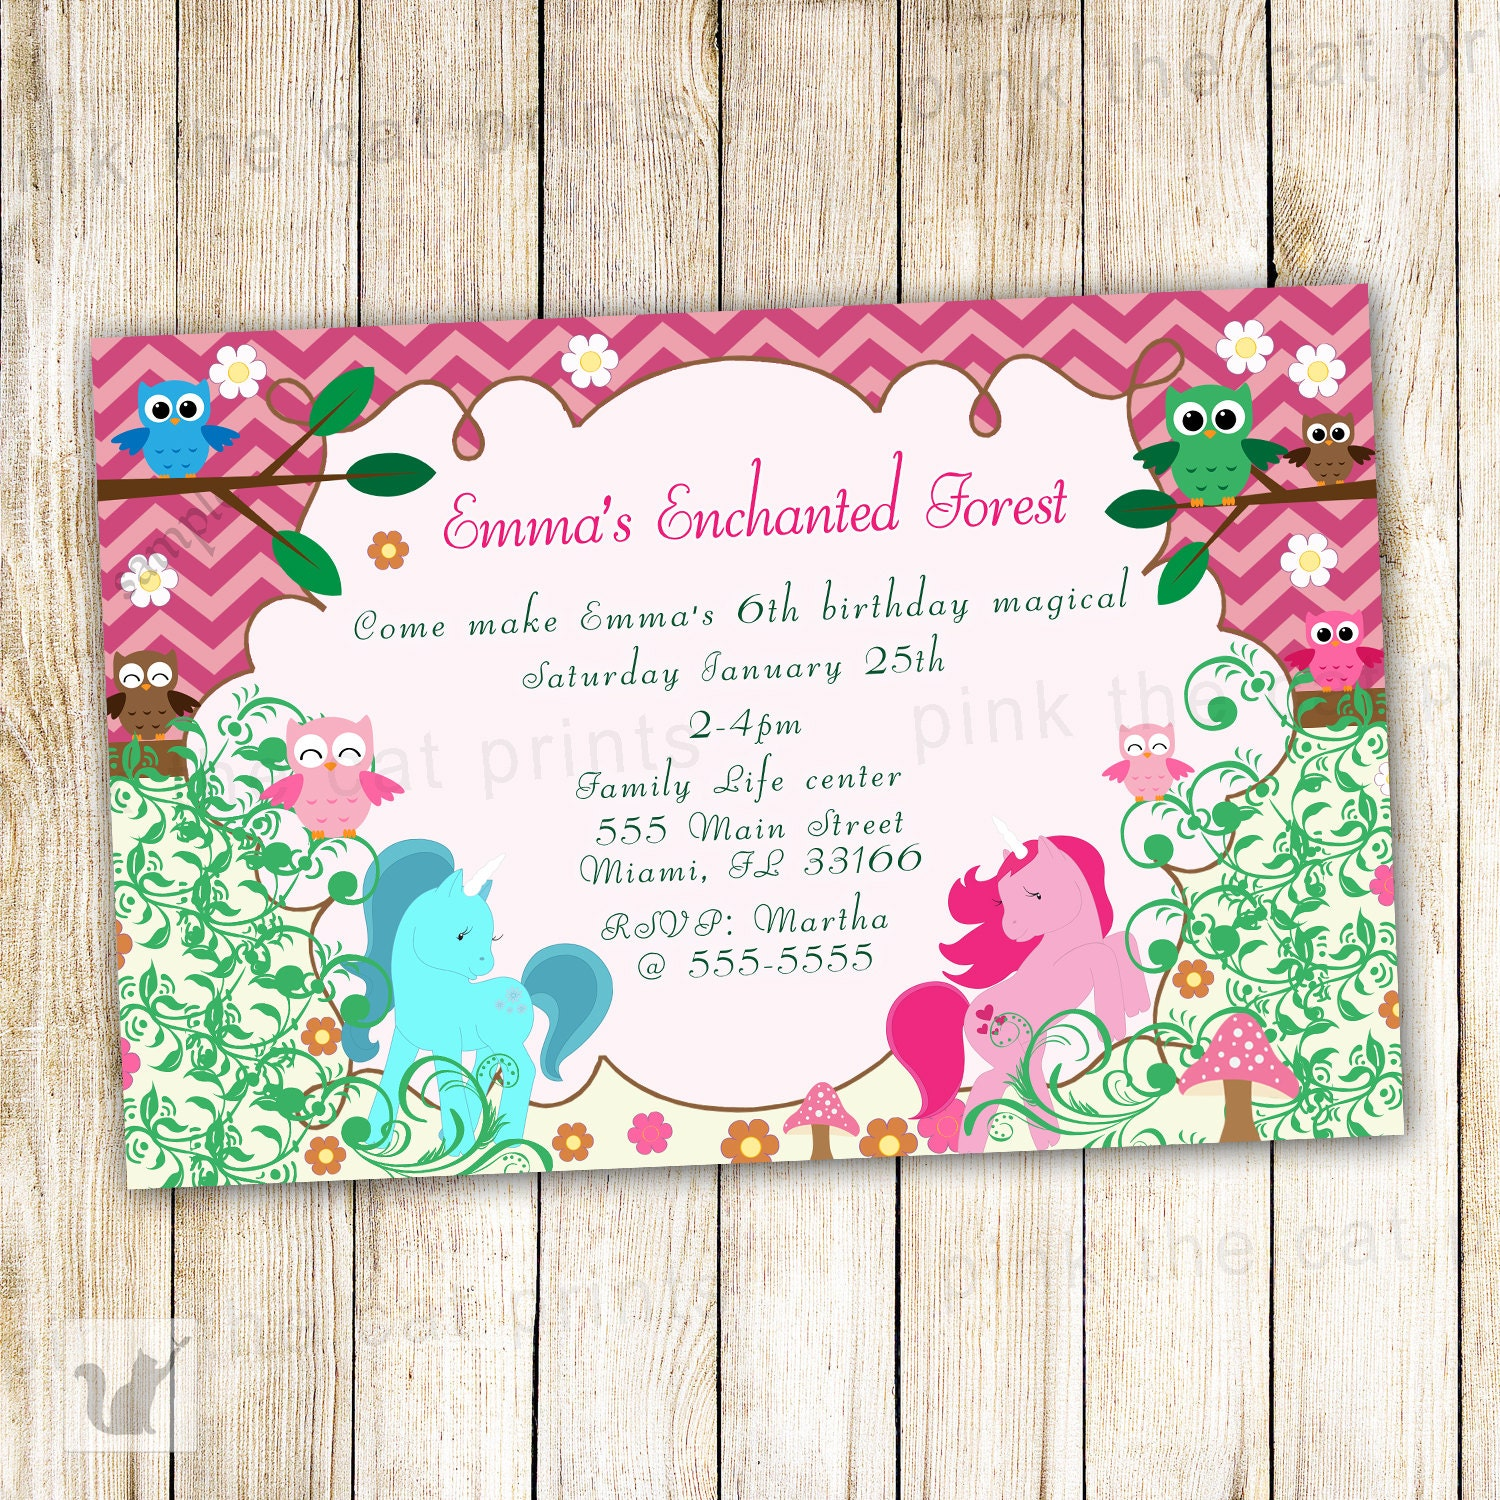 Enchanted forest birthday invitation personalized girl party zoom monicamarmolfo Choice Image